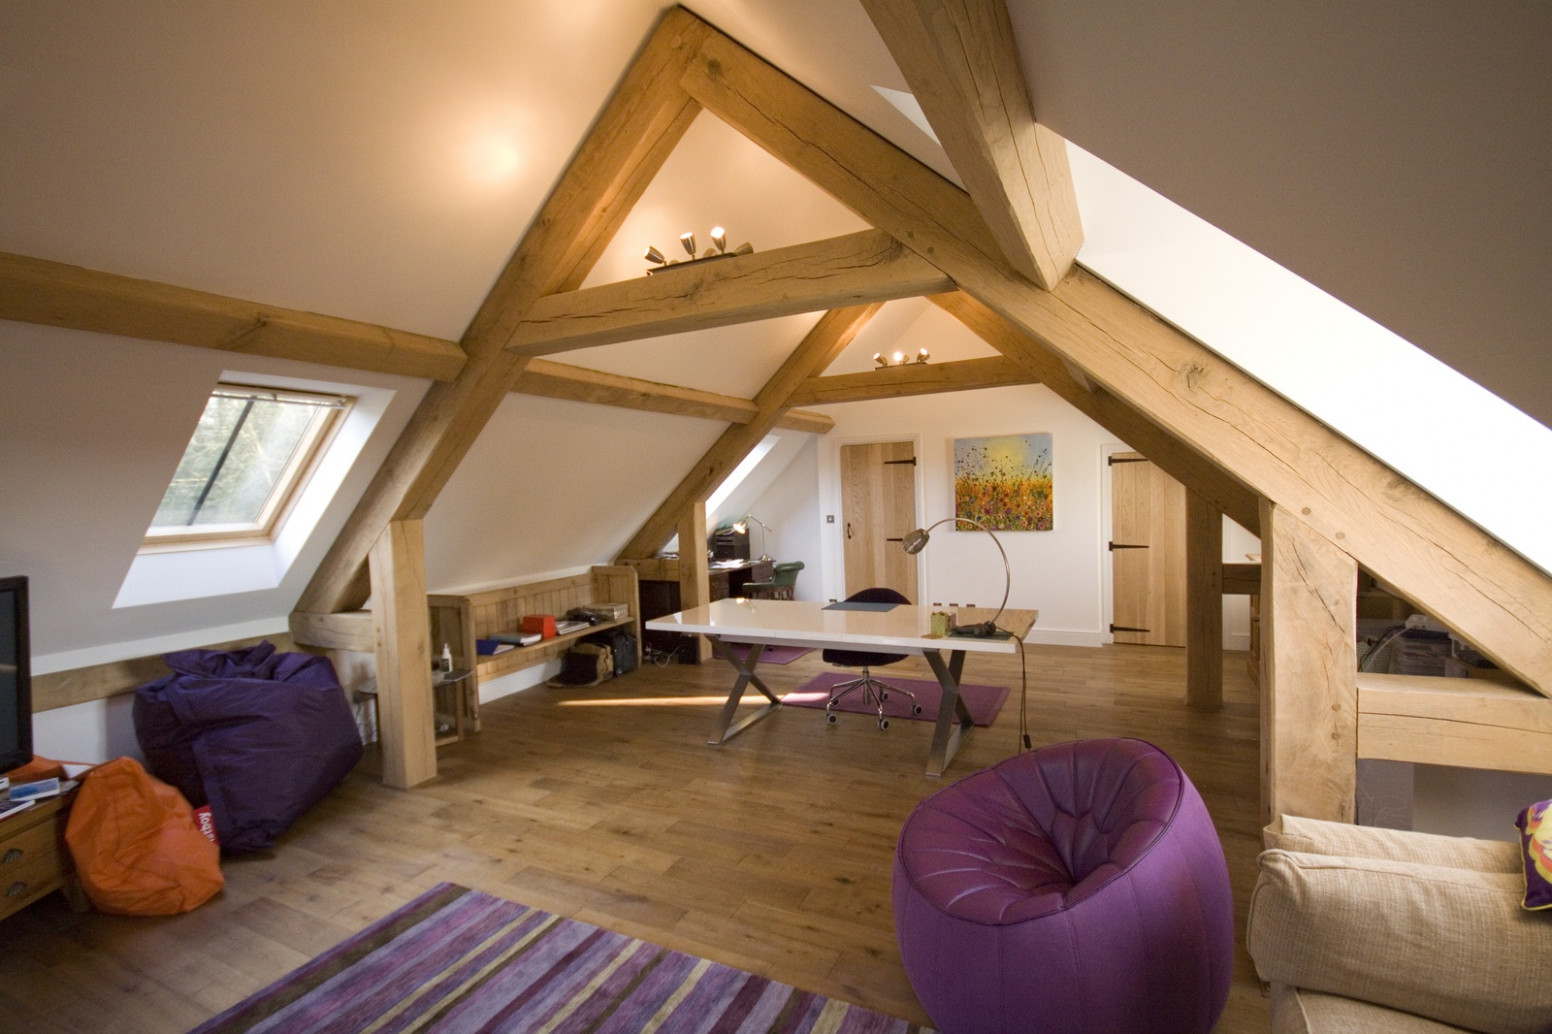 7 Amazing Oak Garage Extensions To Wow Your Customers ..